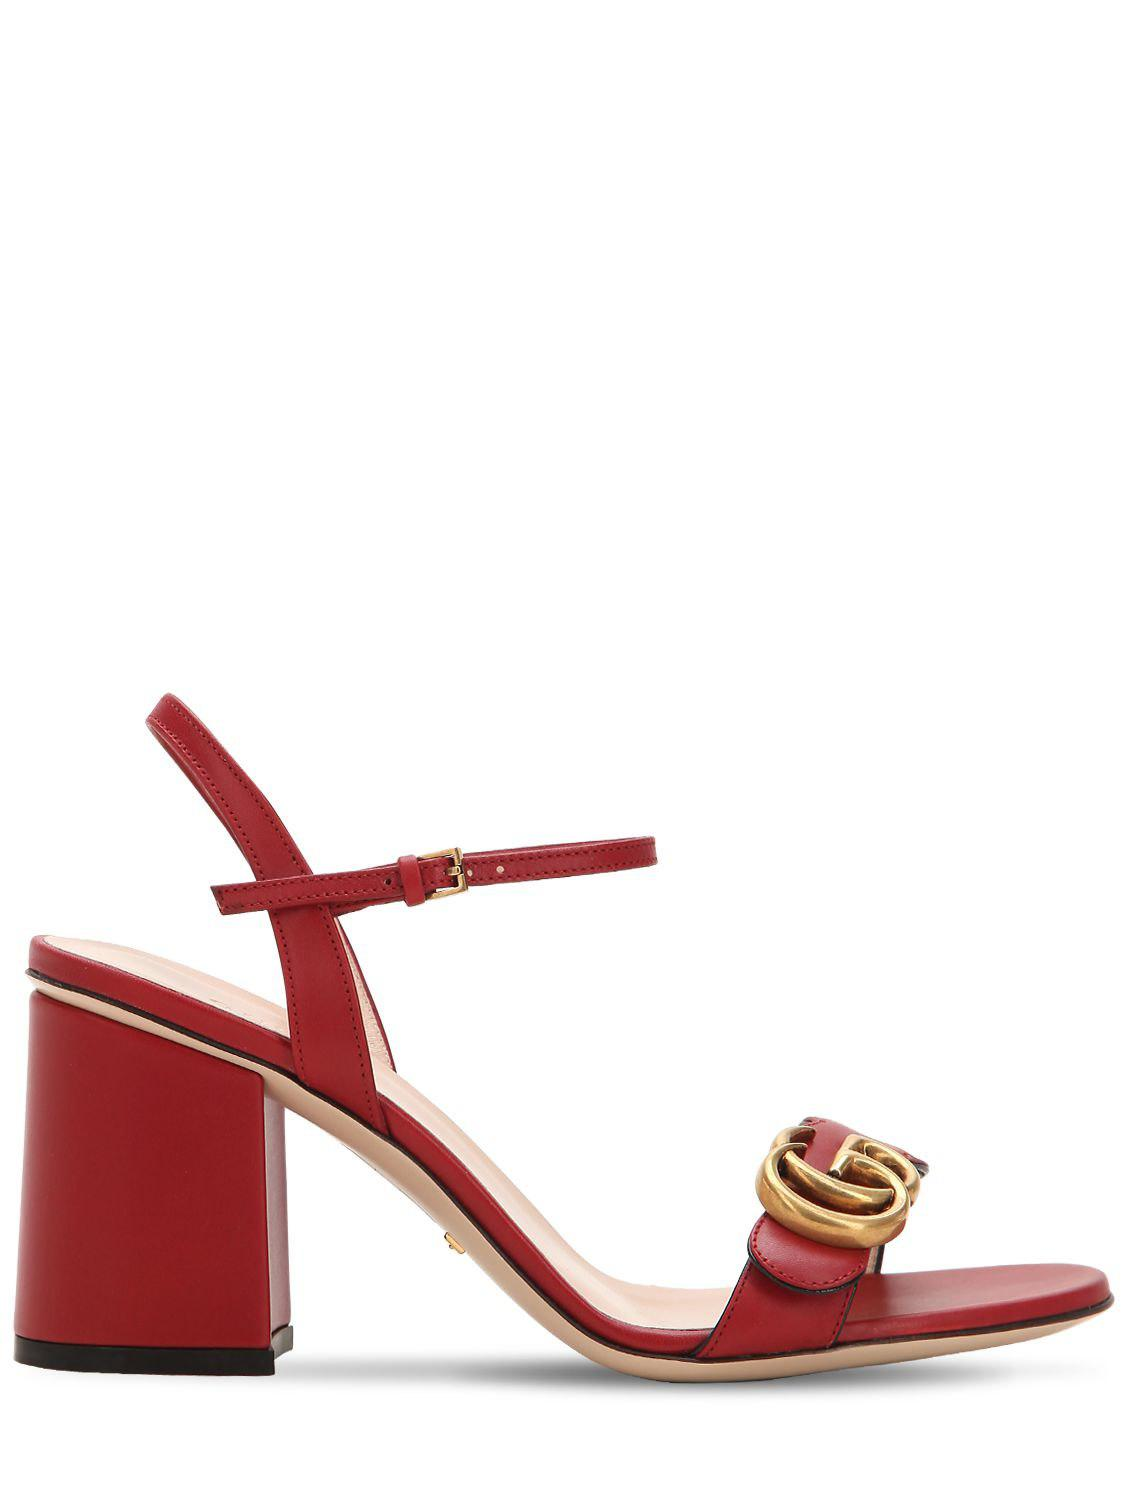 272dd6f84ff Lyst - Gucci 75mm Marmont Leather Sandals in Red - Save 16%